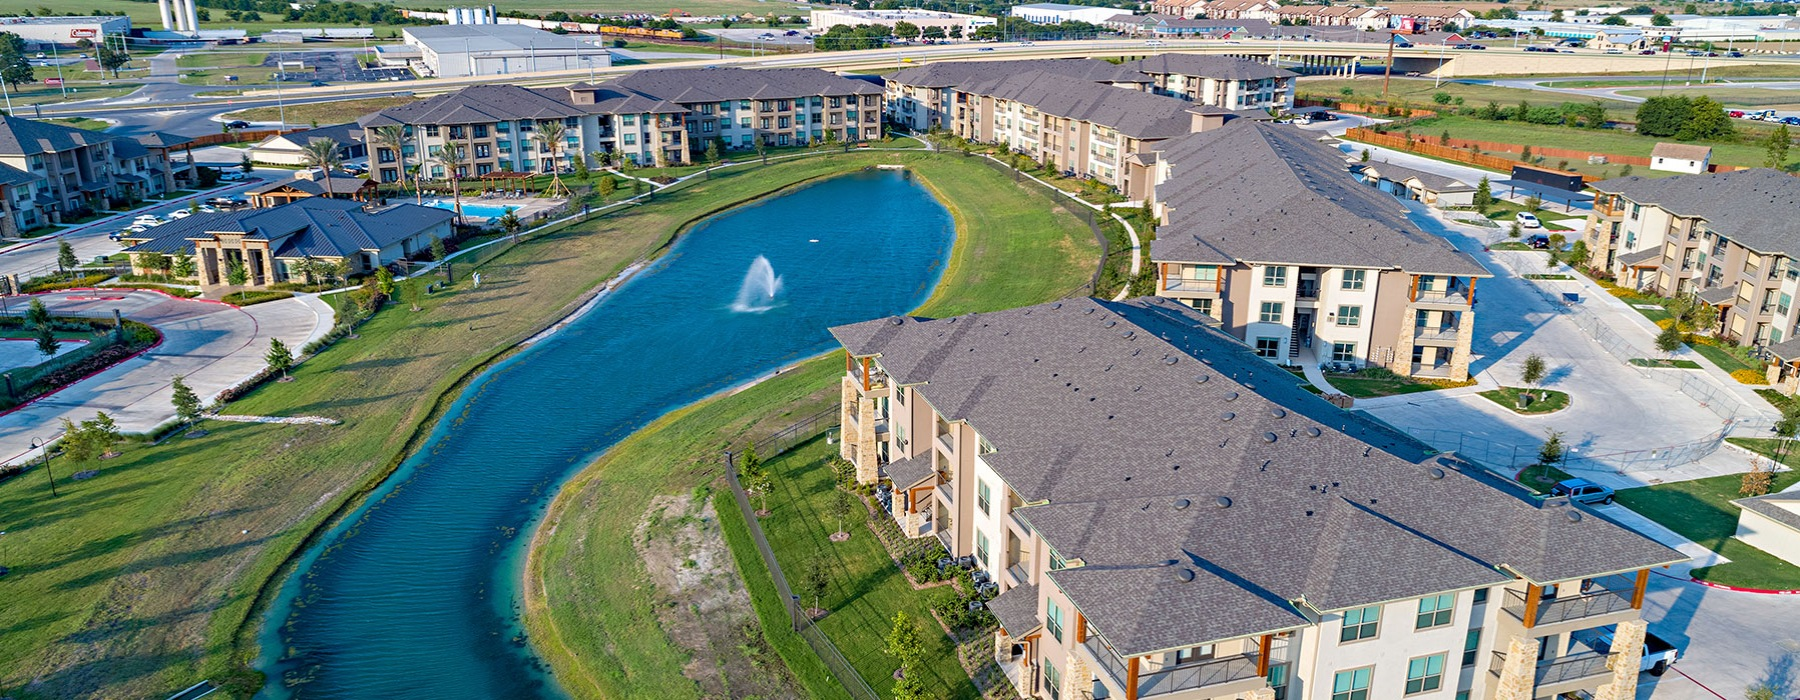 Lakeview Villas birds eye view of complex and pond